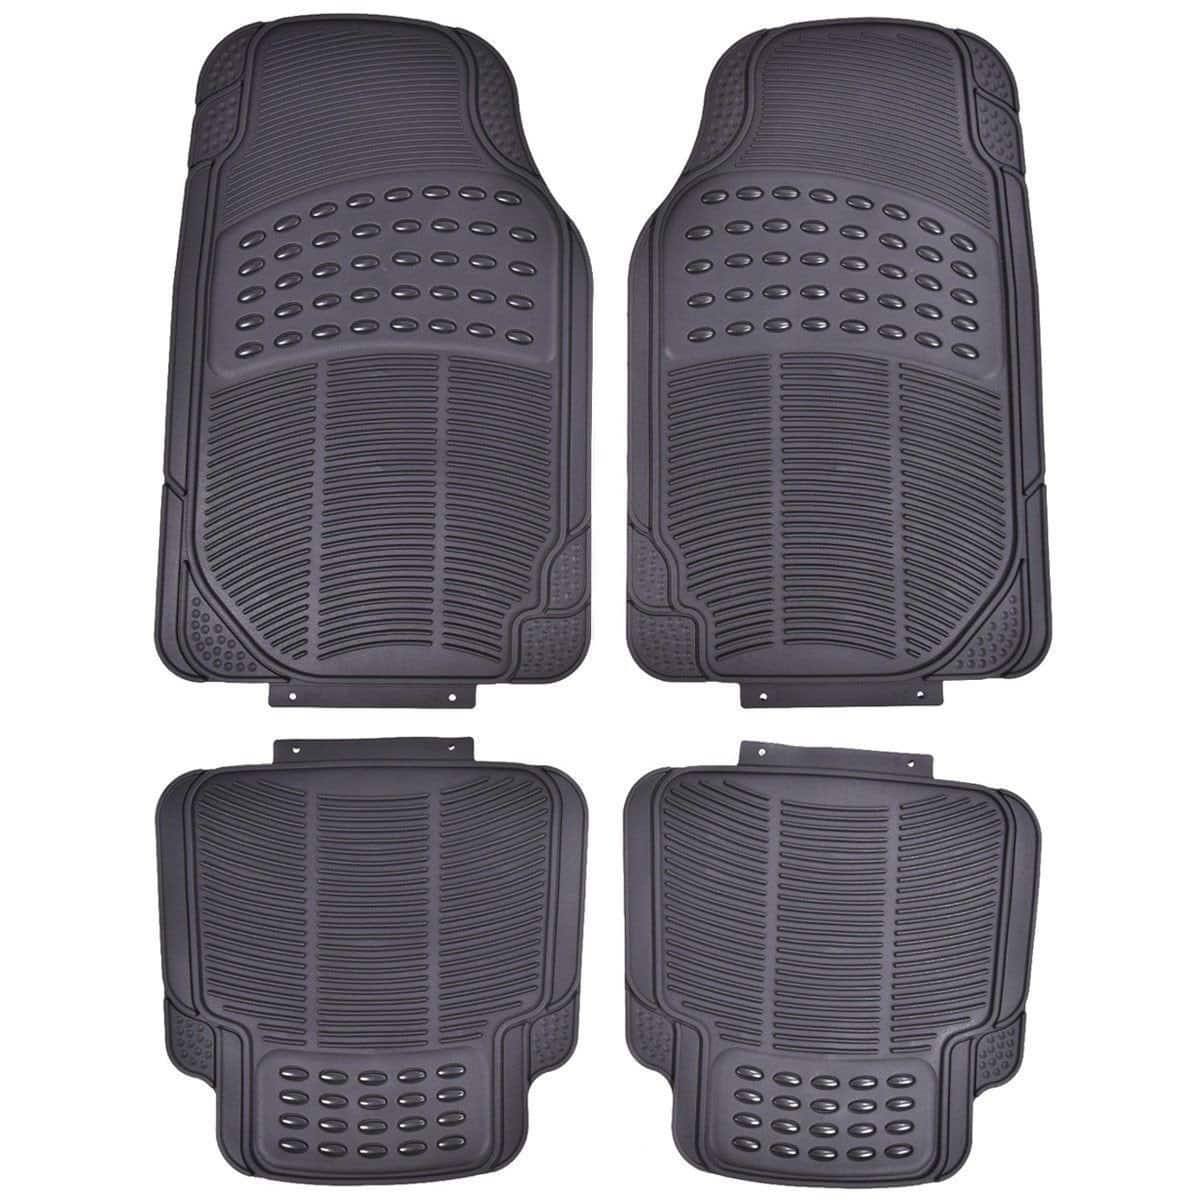 Costway 4-Piece Cargo Front & Rear Floor Mat All Weather Heavy Duty Universal Cars Protection - $5.00 + Free Shipping